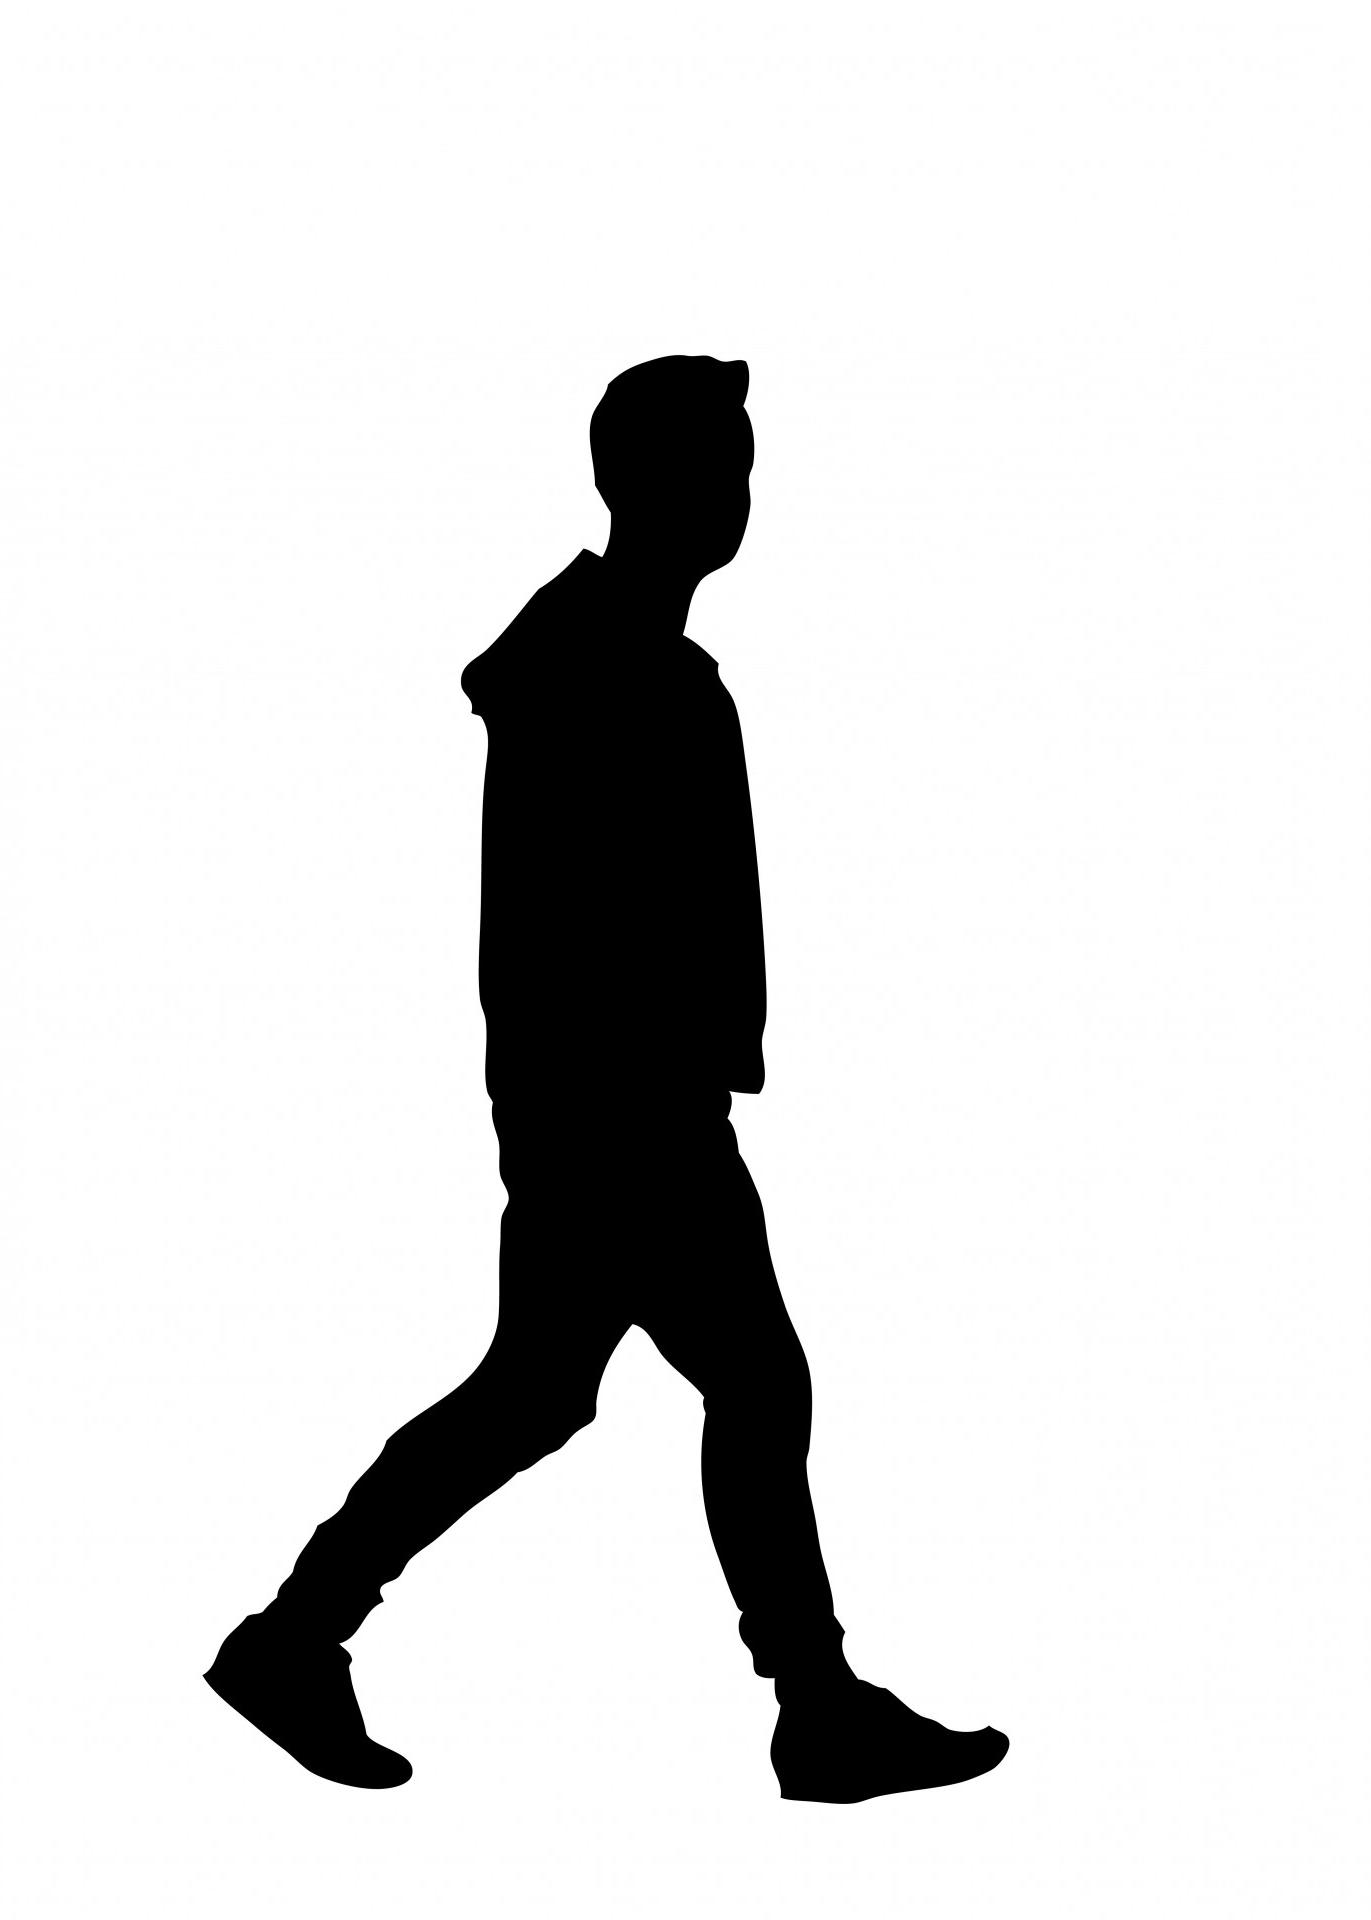 Human silhouette free download. Clipart walking outline